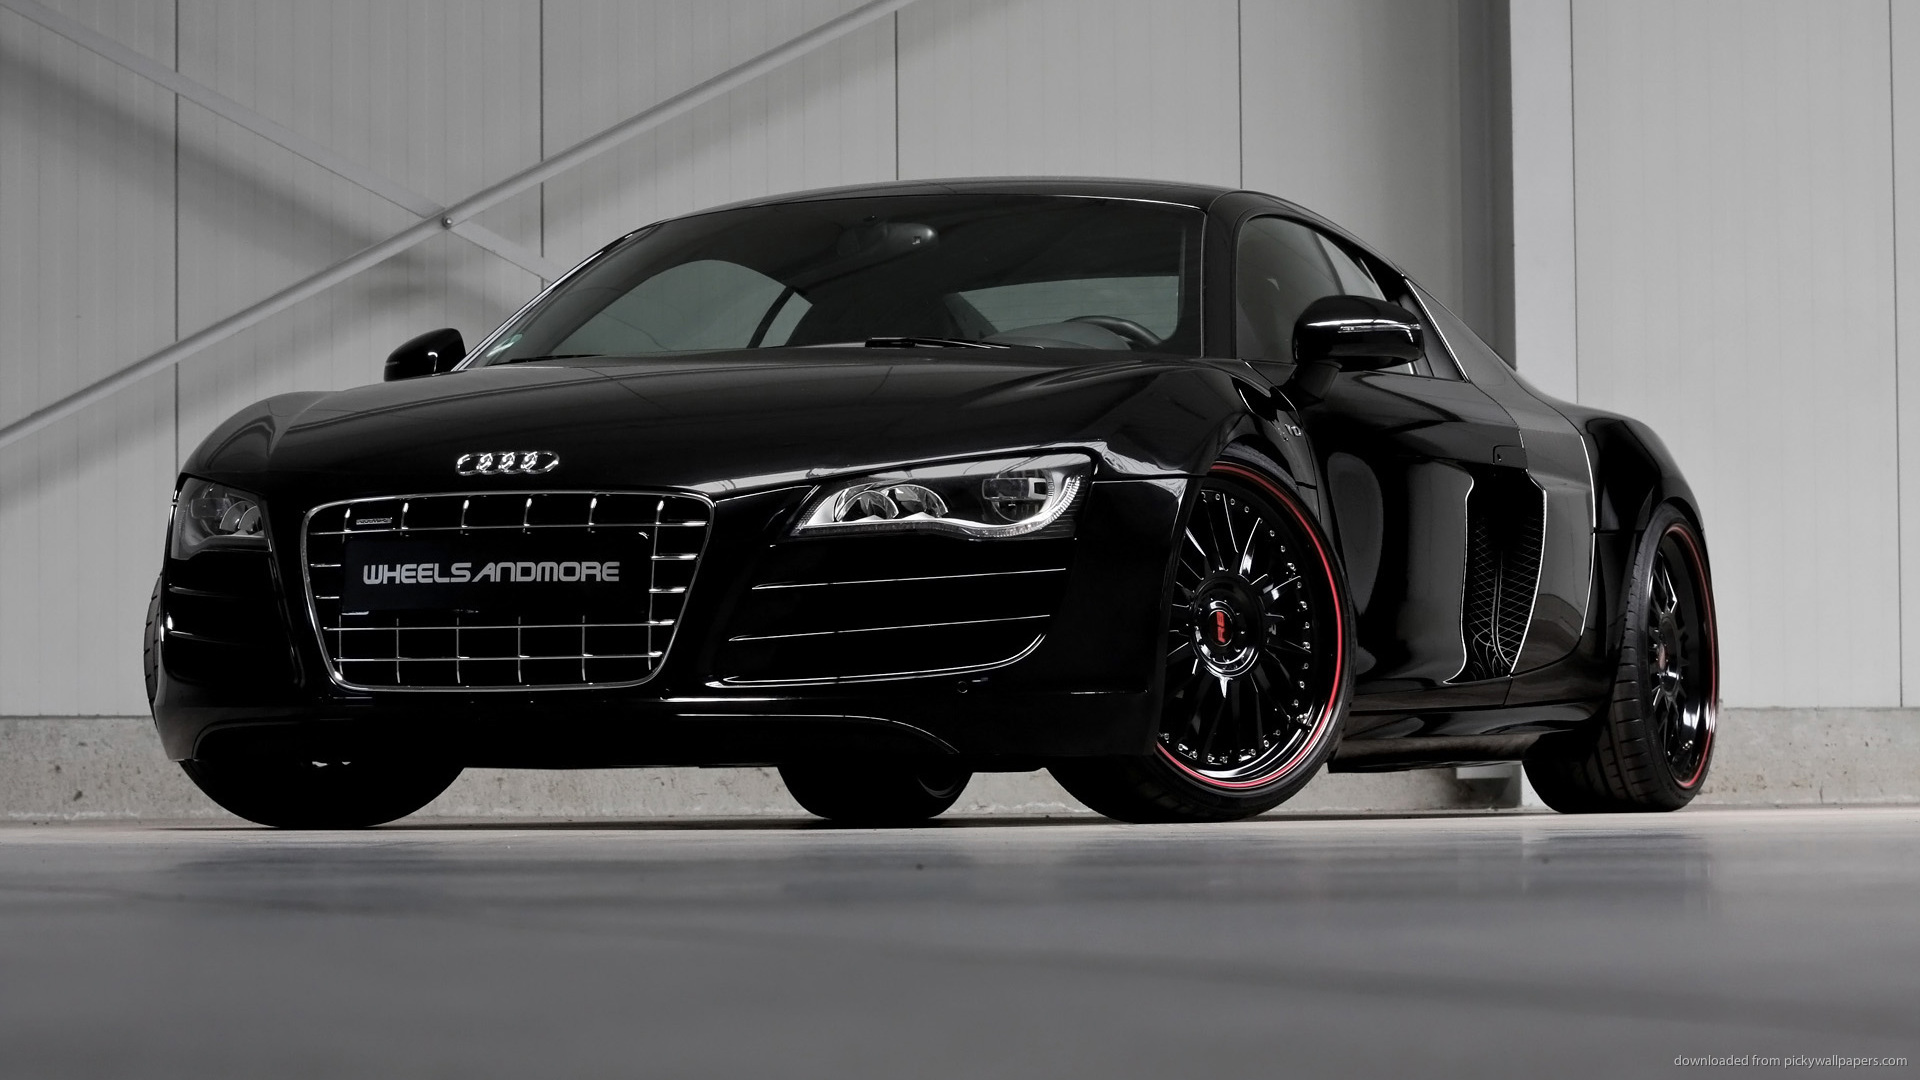 Audi Wallpaper 1920x1080 Images & Pictures - Becuo